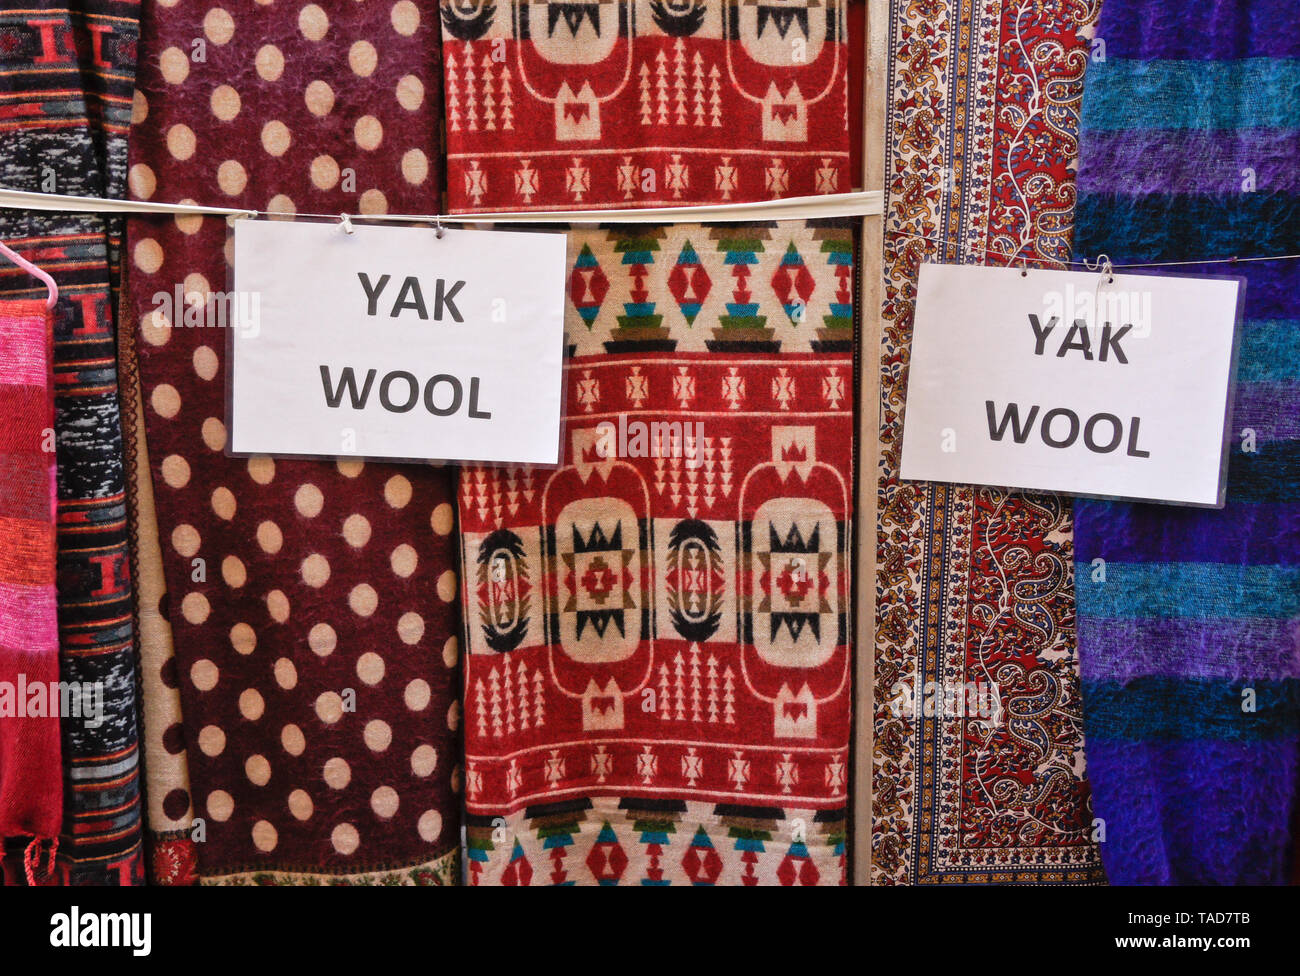 Yak wool products for sale in a narrow alley off Durbar Square, Bhaktapur, Kathmandu Valley, Nepal - Stock Image